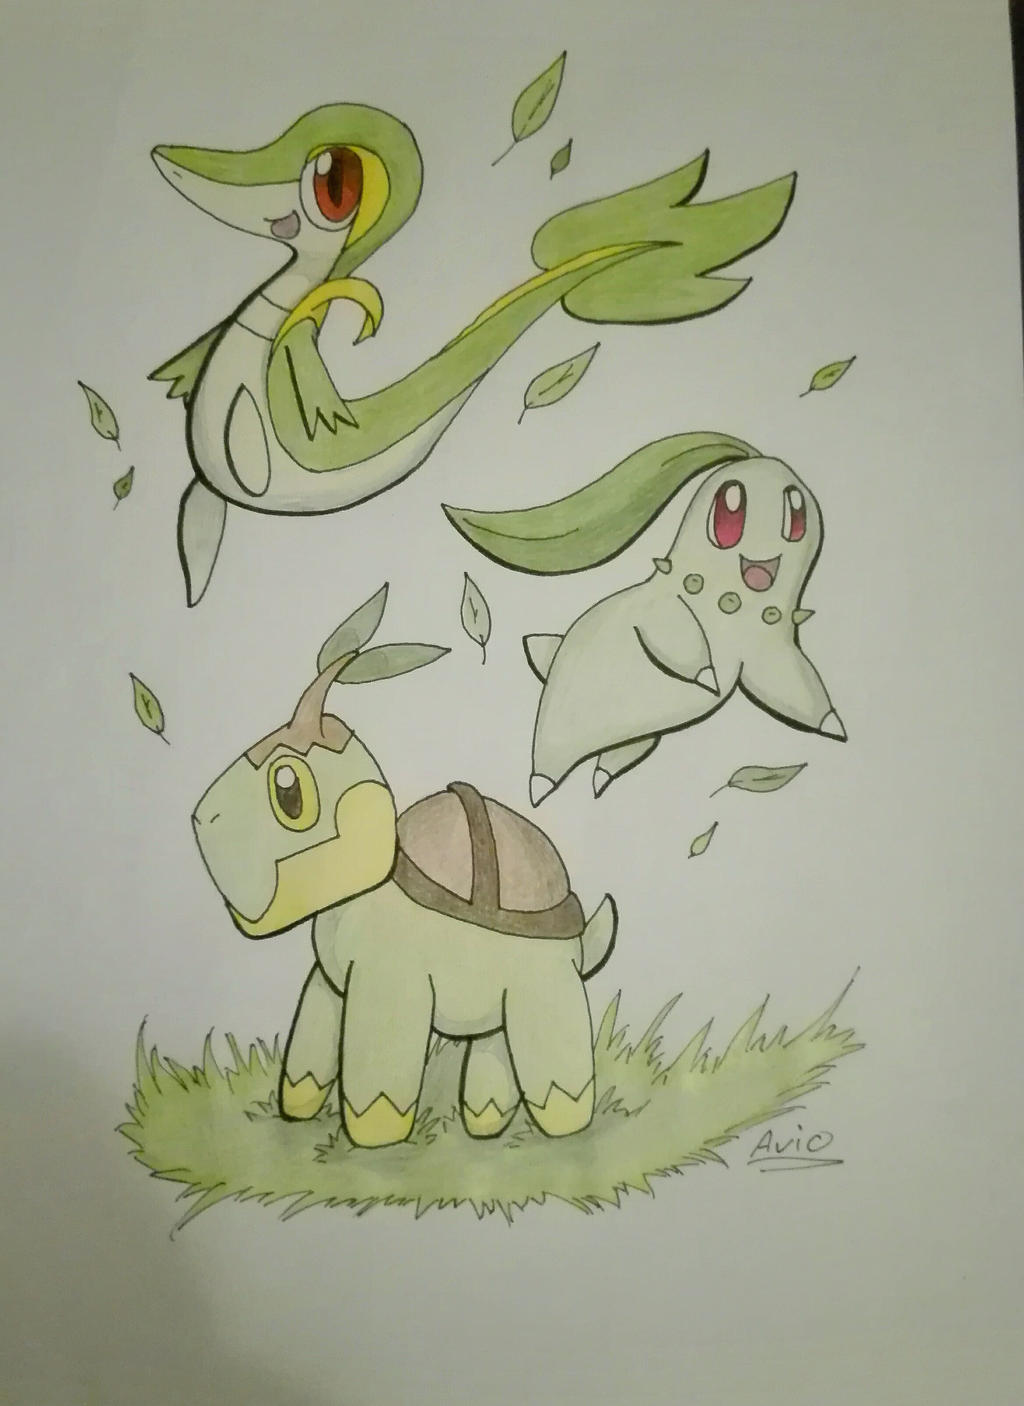 Pokecember day 3: Grass type by ArioGrimmRe